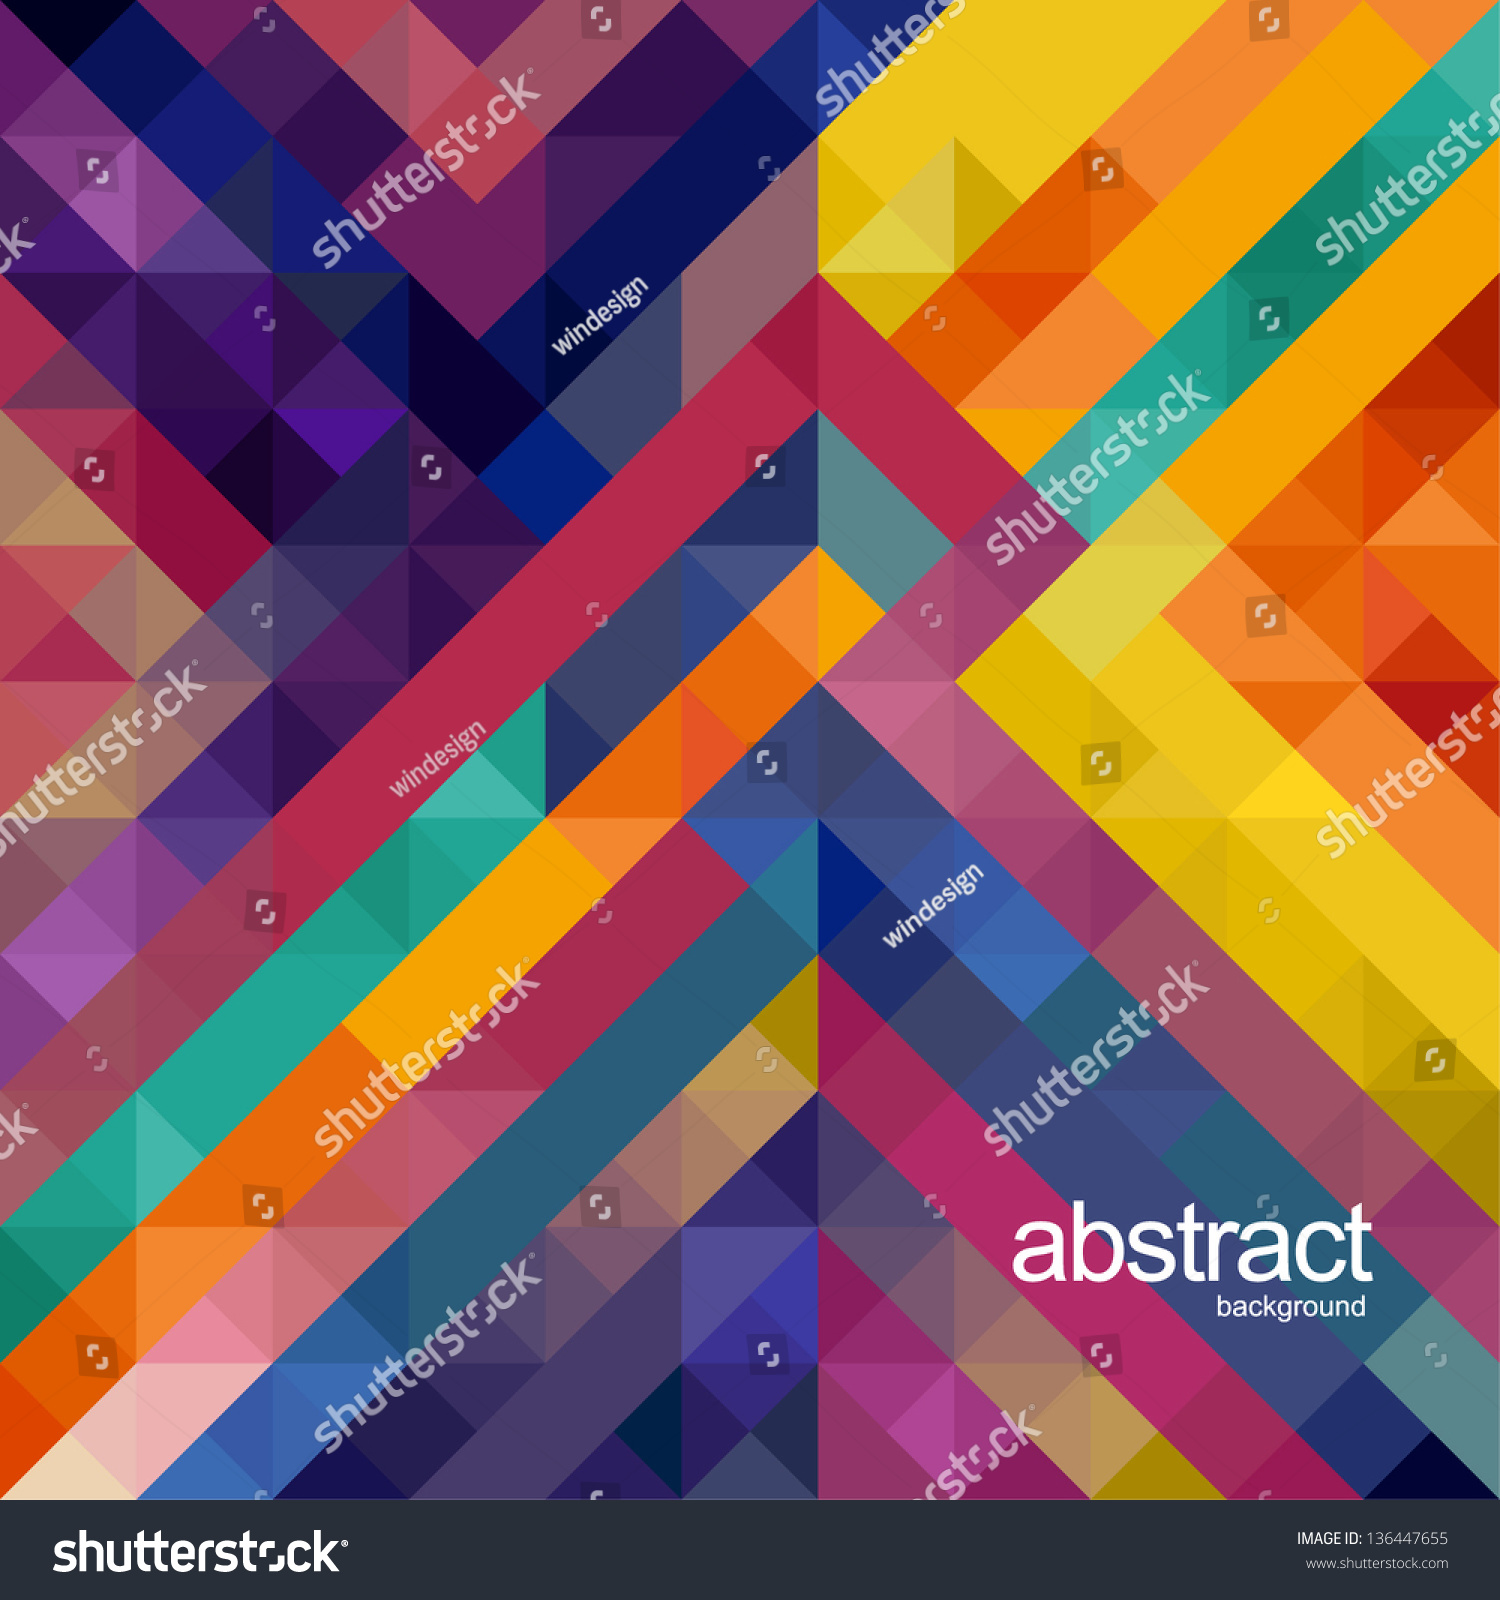 Background image design - Abstract Background For Design